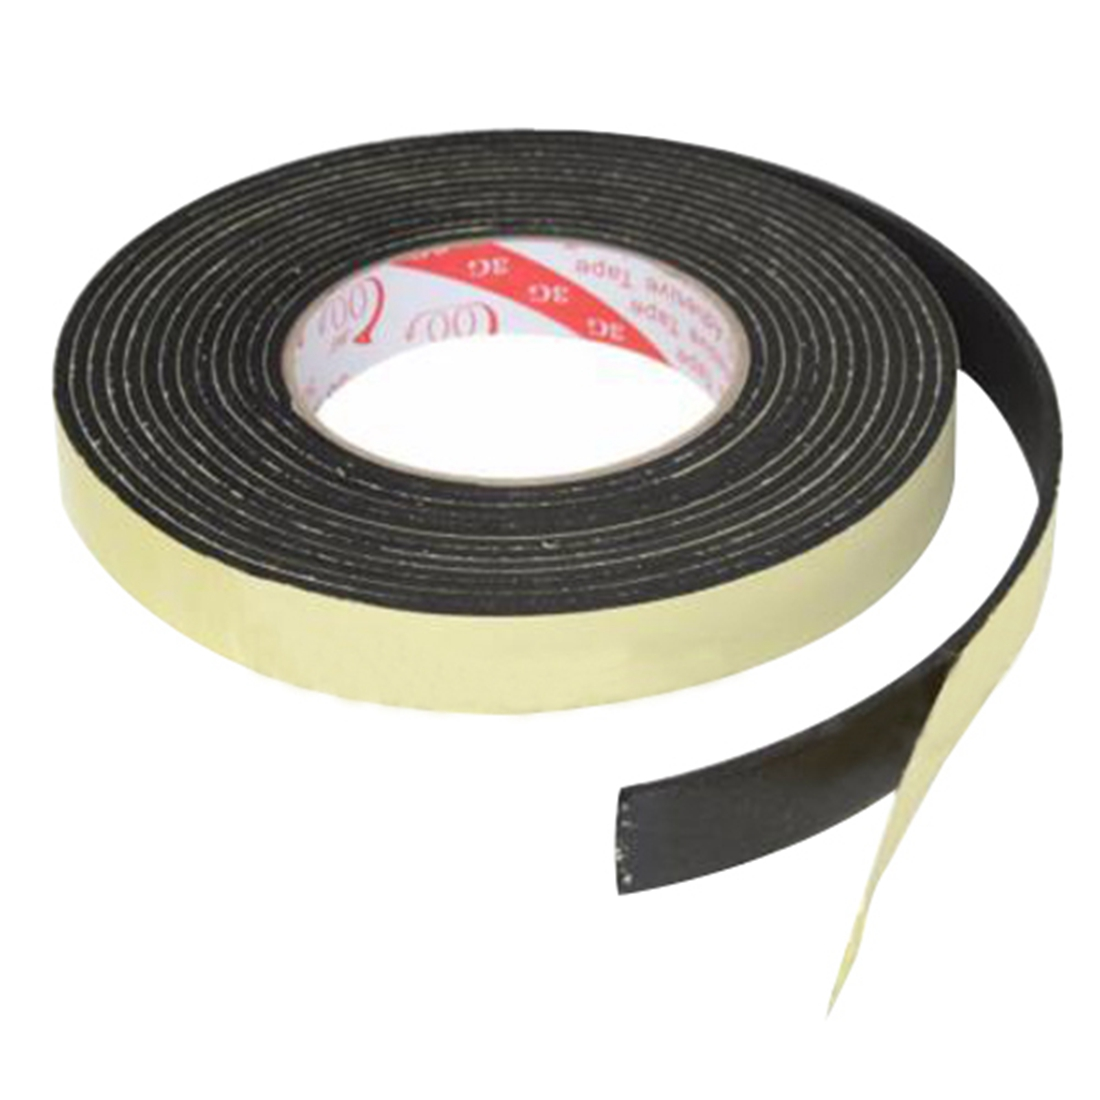 2X-5m-Single-Sided-Self-Adhesive-Foam-Tape-Closed-Cell-20mm-Wide-x-3mm-Thick-DW